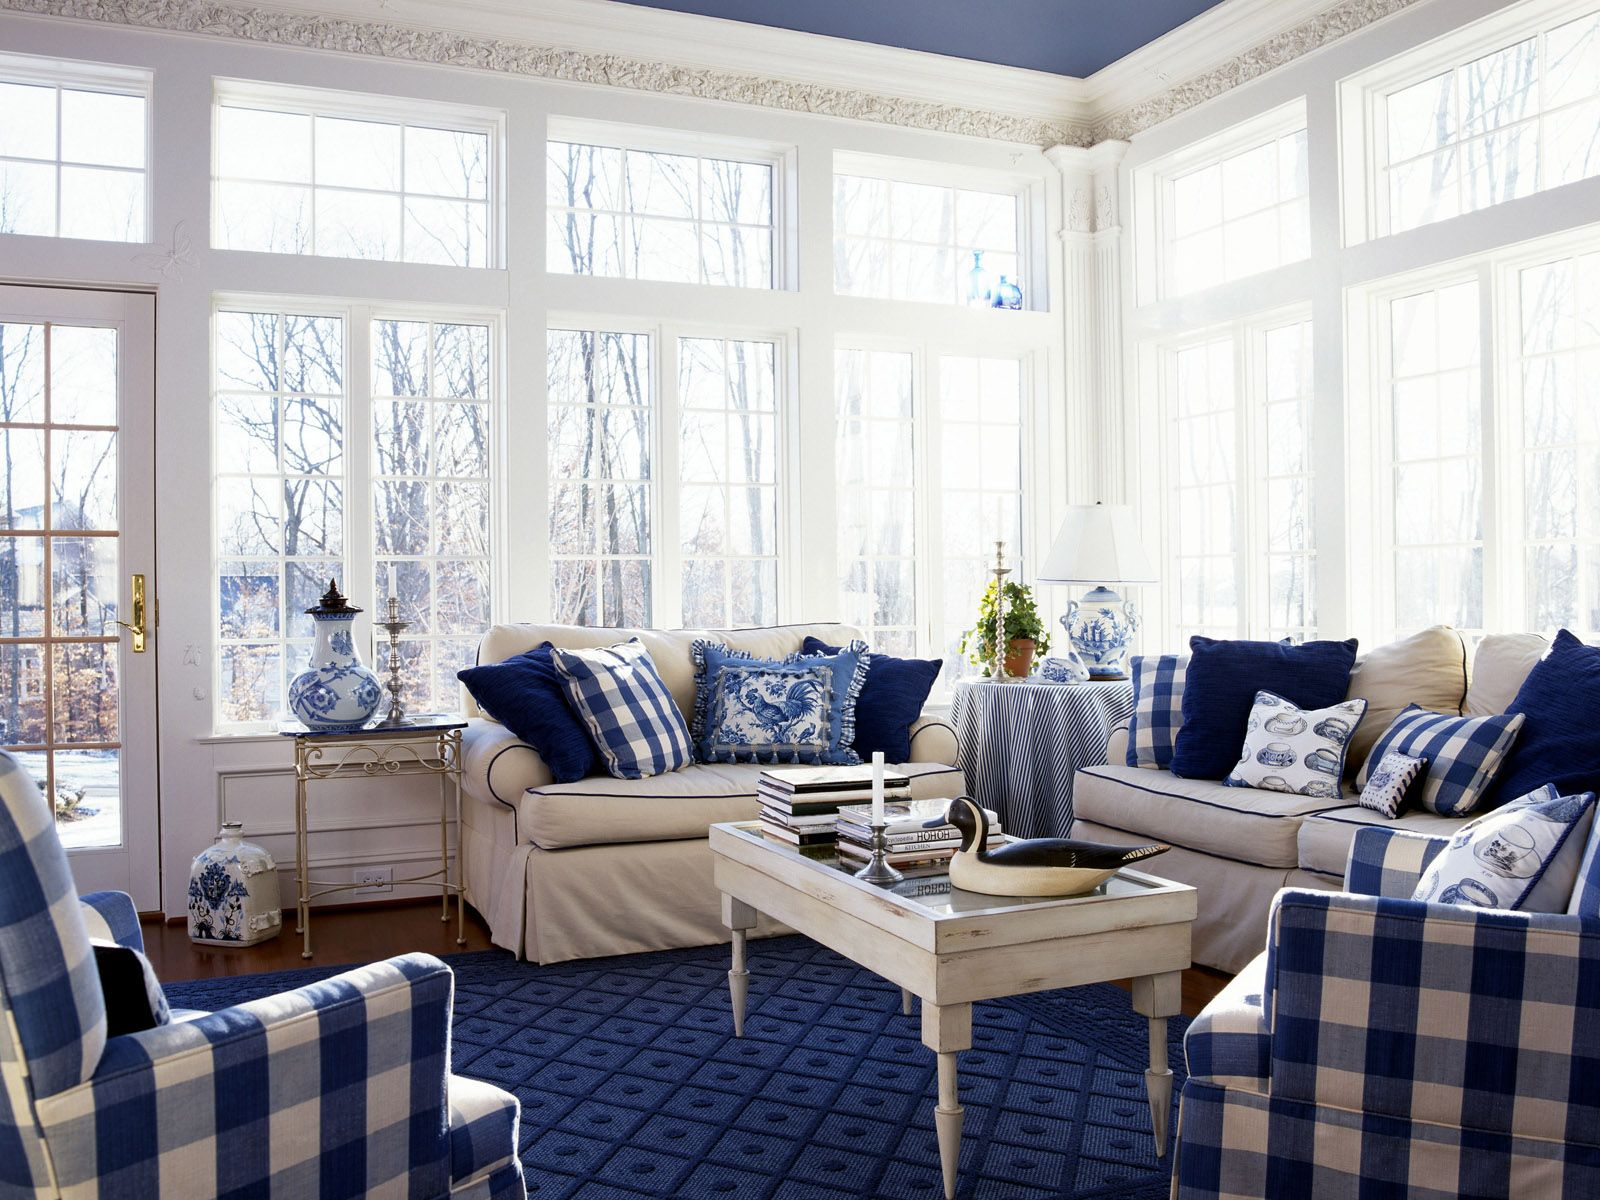 Get inspired with room ideas from Lamps